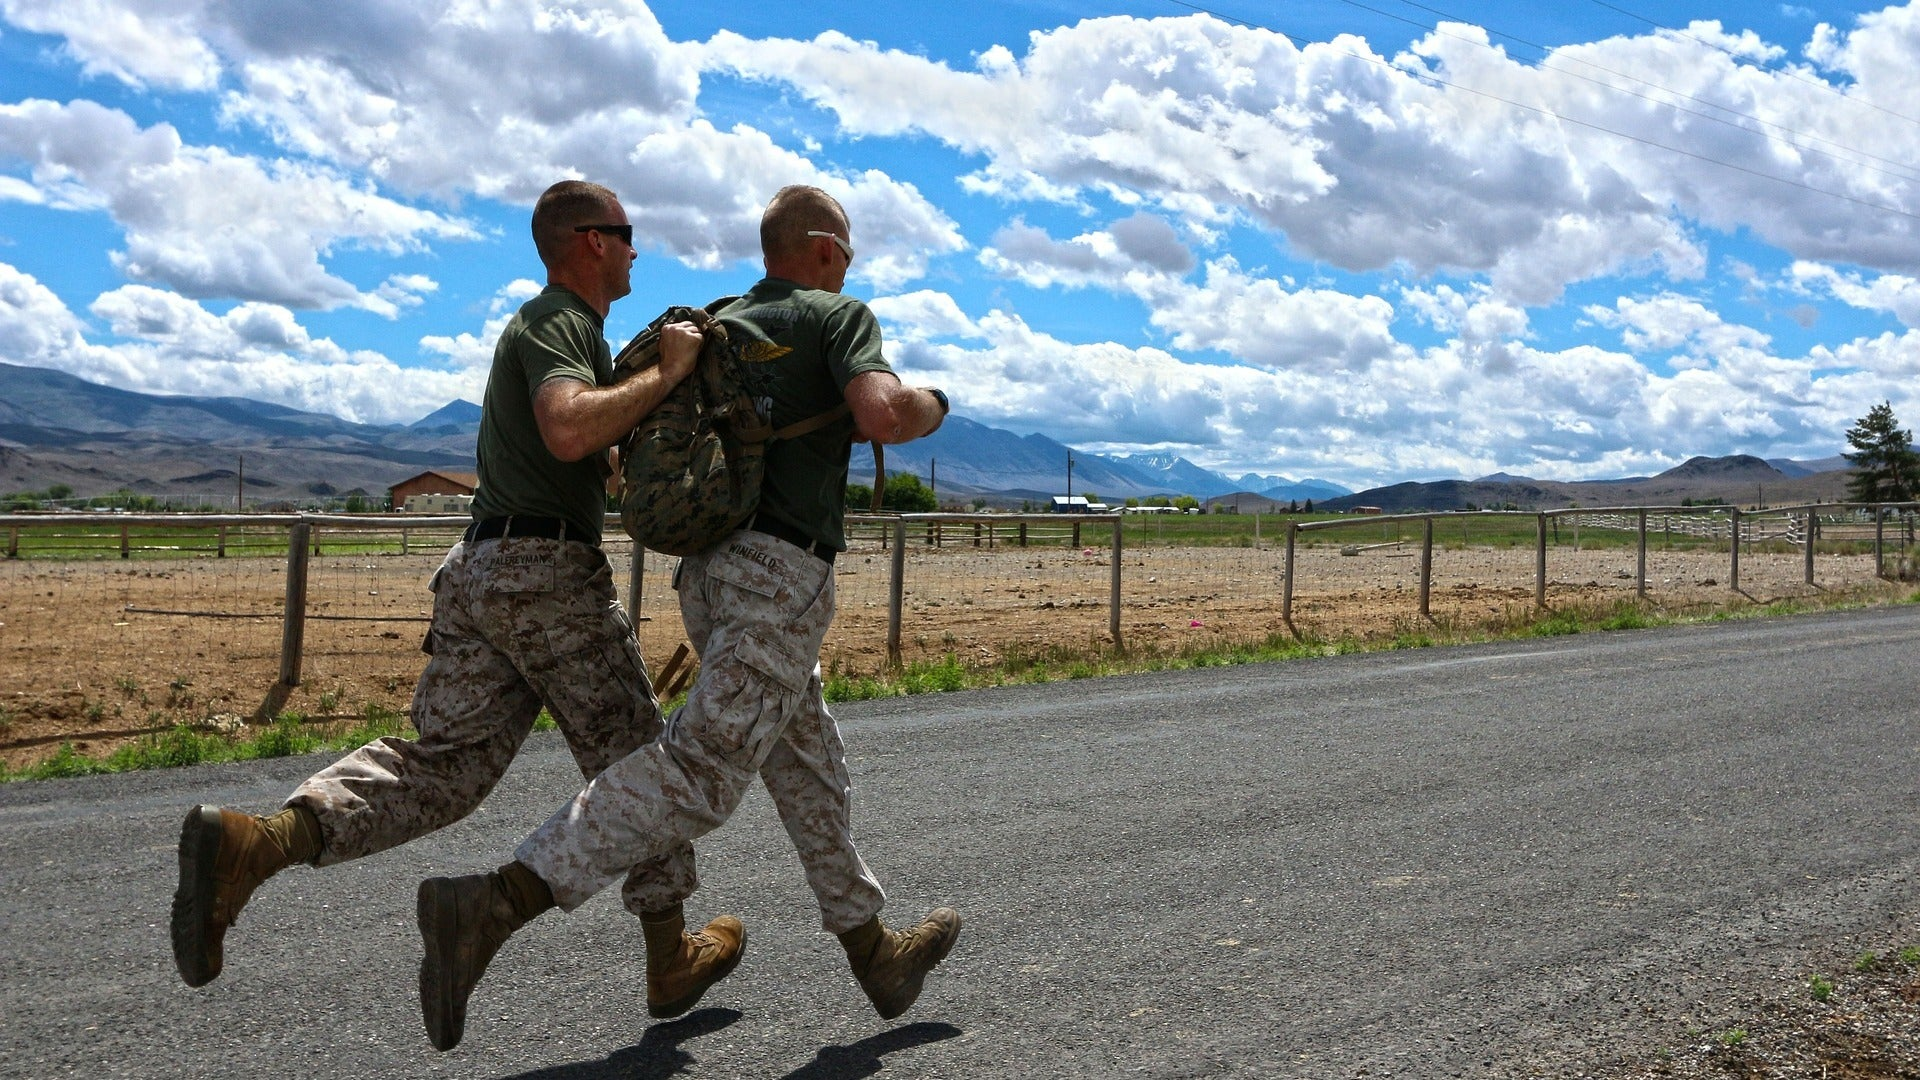 Run Stronger To These Call-And-Response Military Cadence Tracks